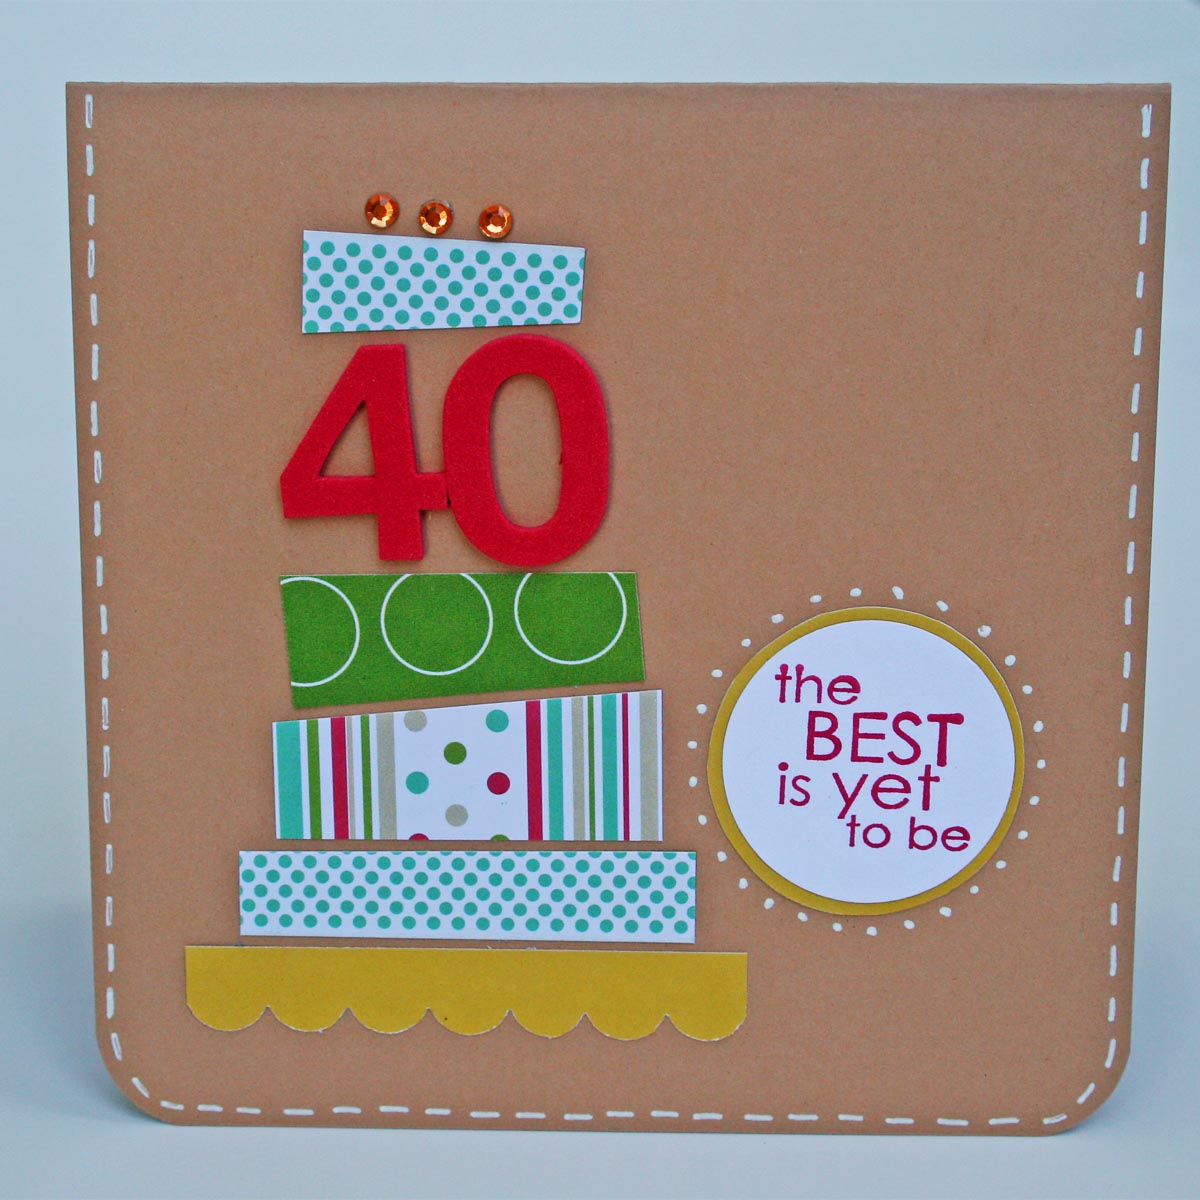 Carrot Top X 3: 40th Birthday Card